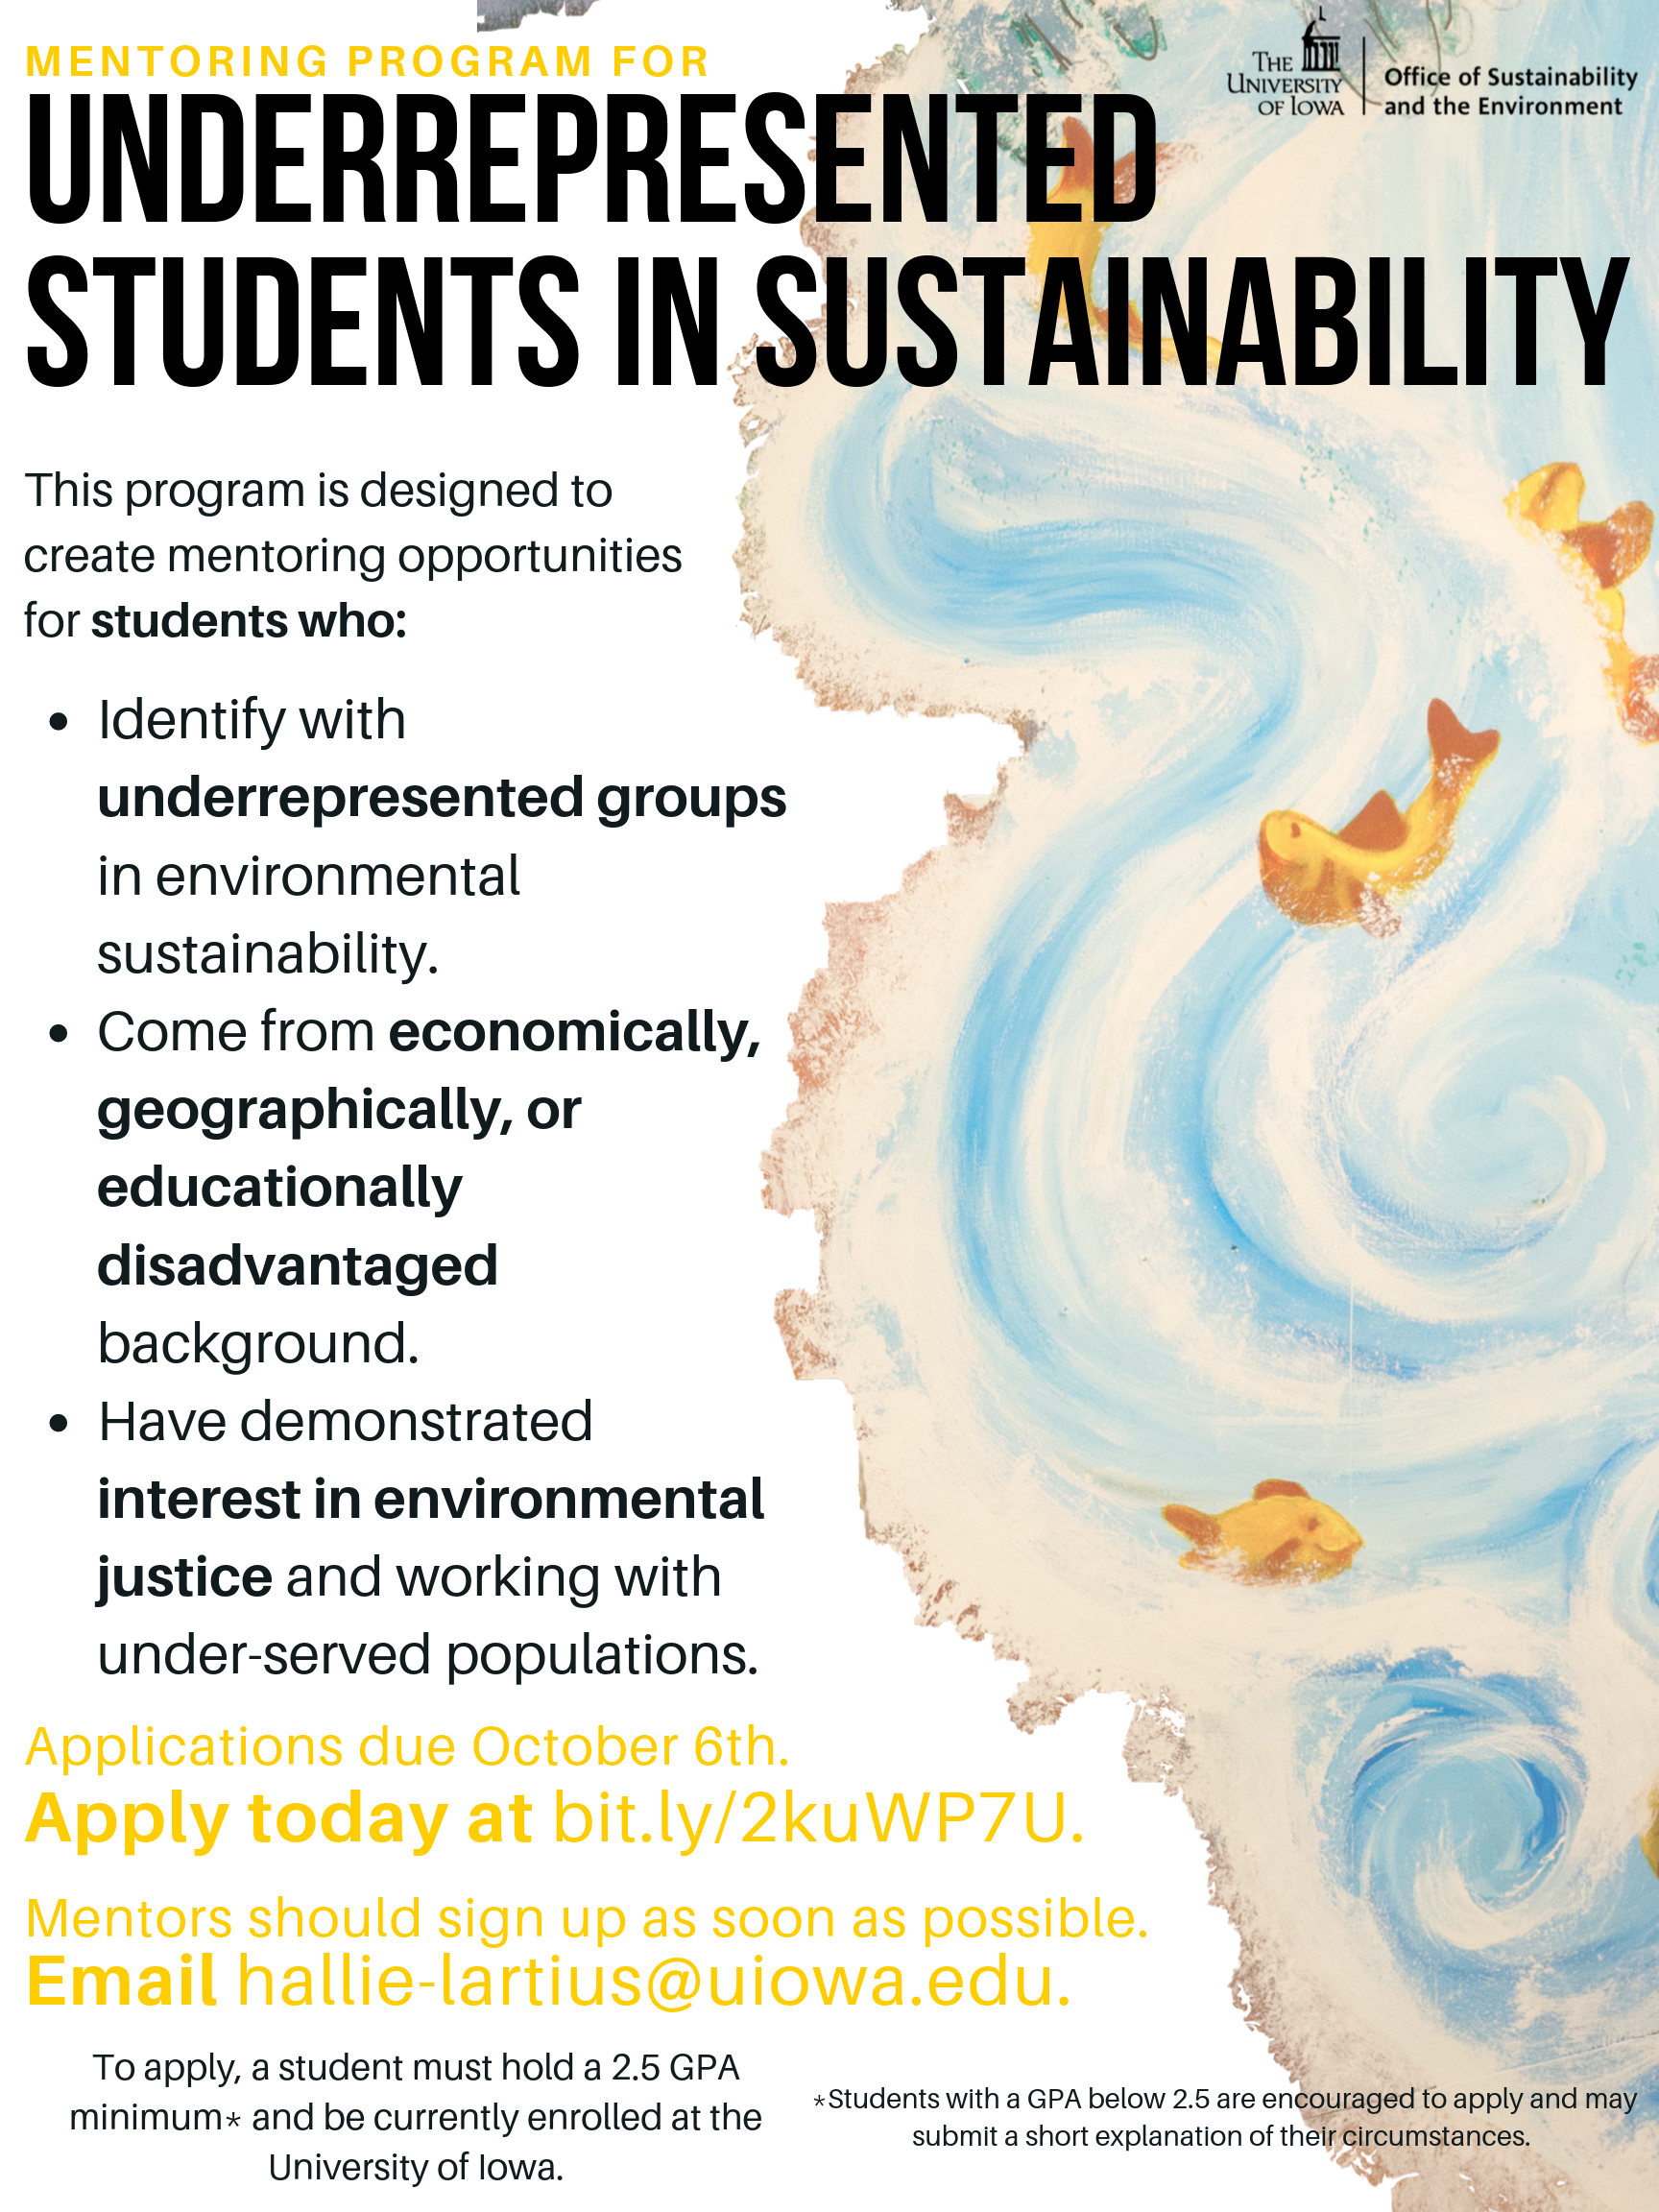 underrepresented students in sustainability flier